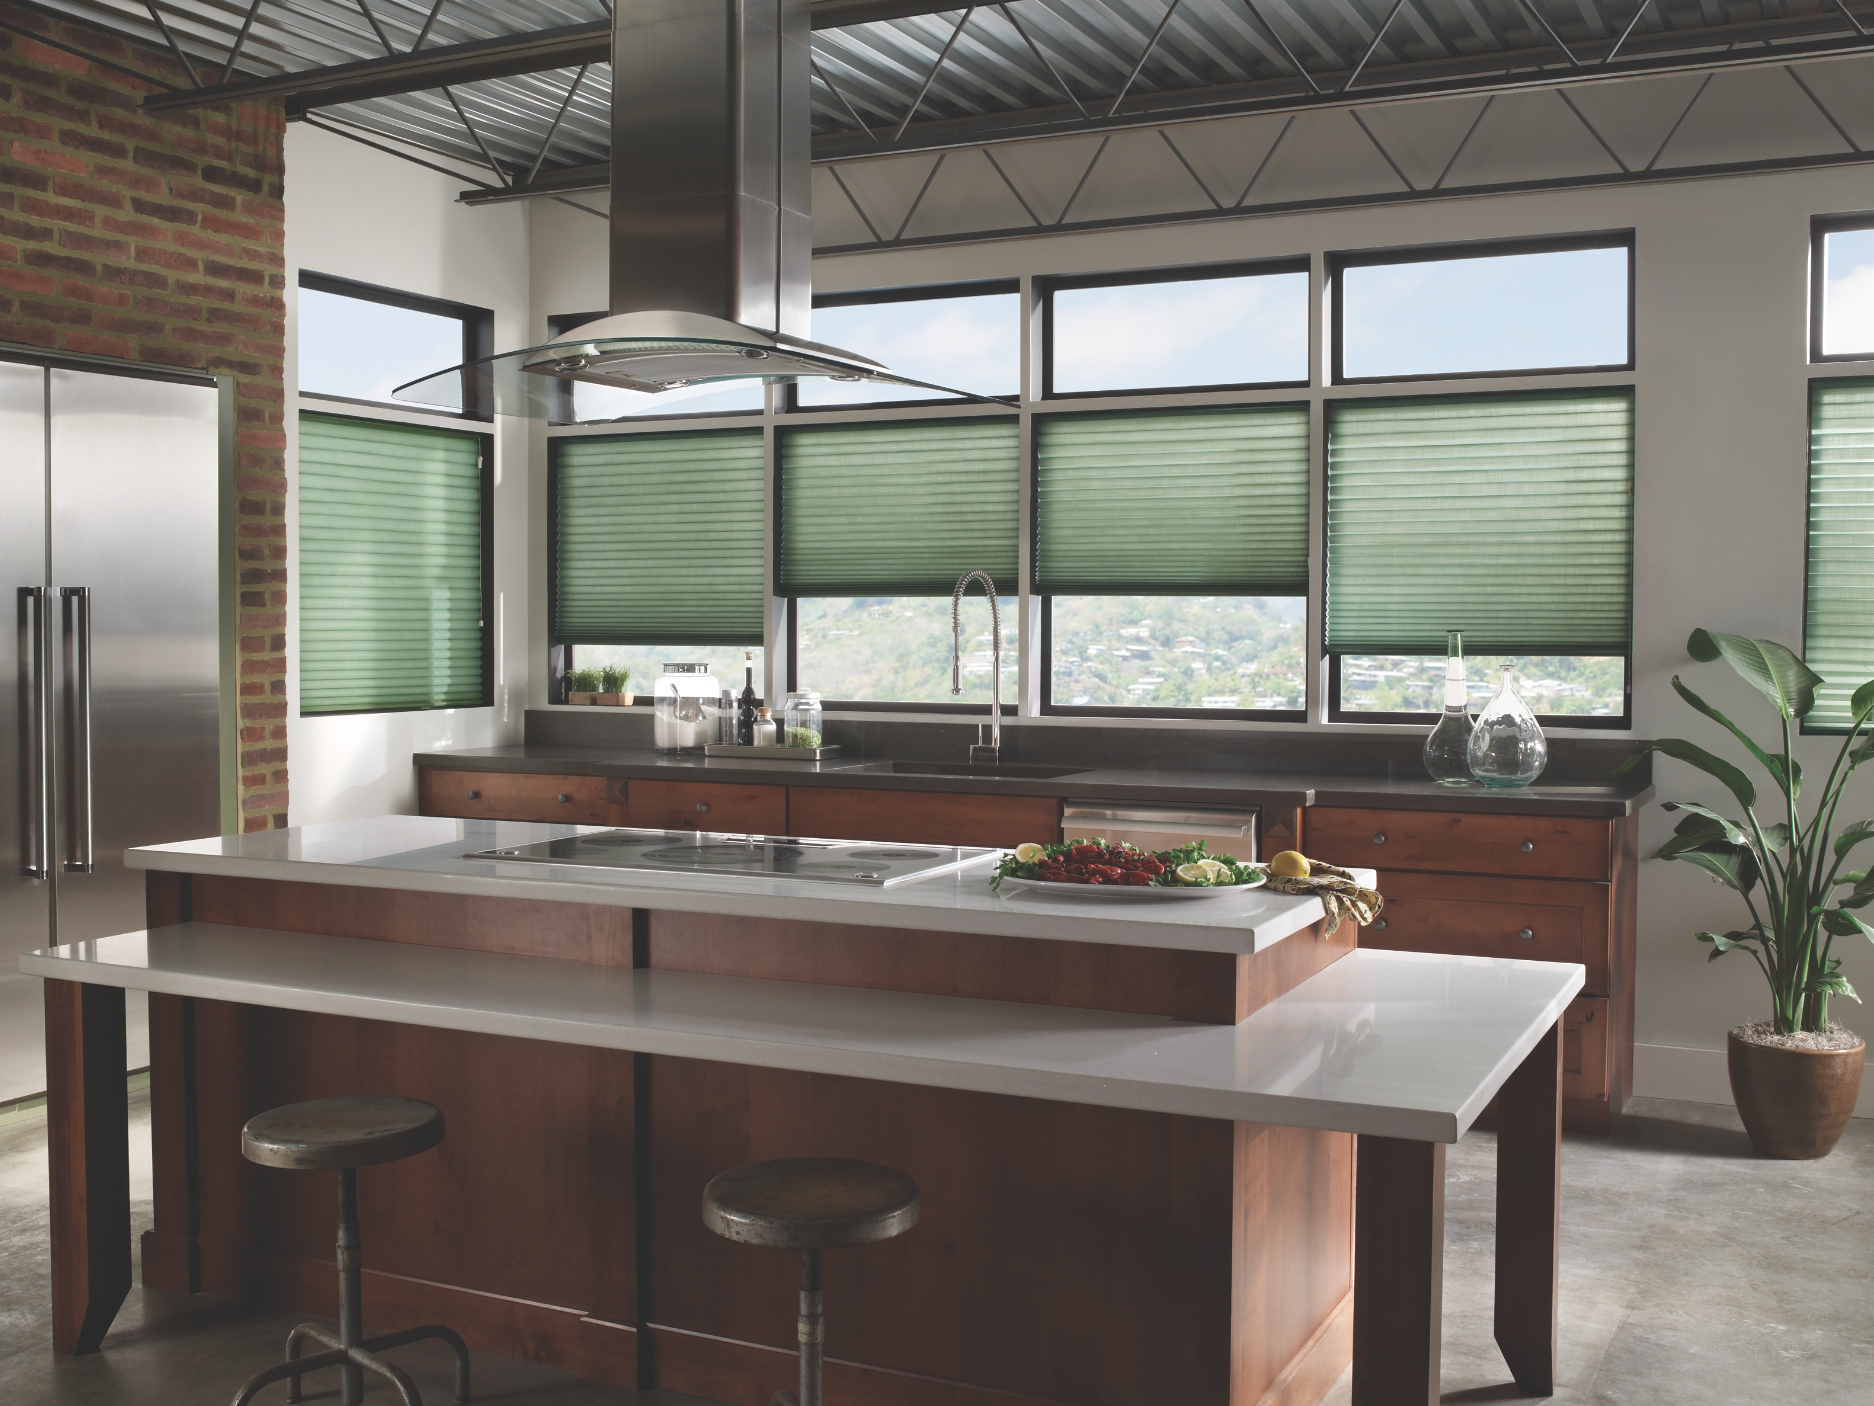 Modern Kitchen Cellular Shades From Blindsgalorecom